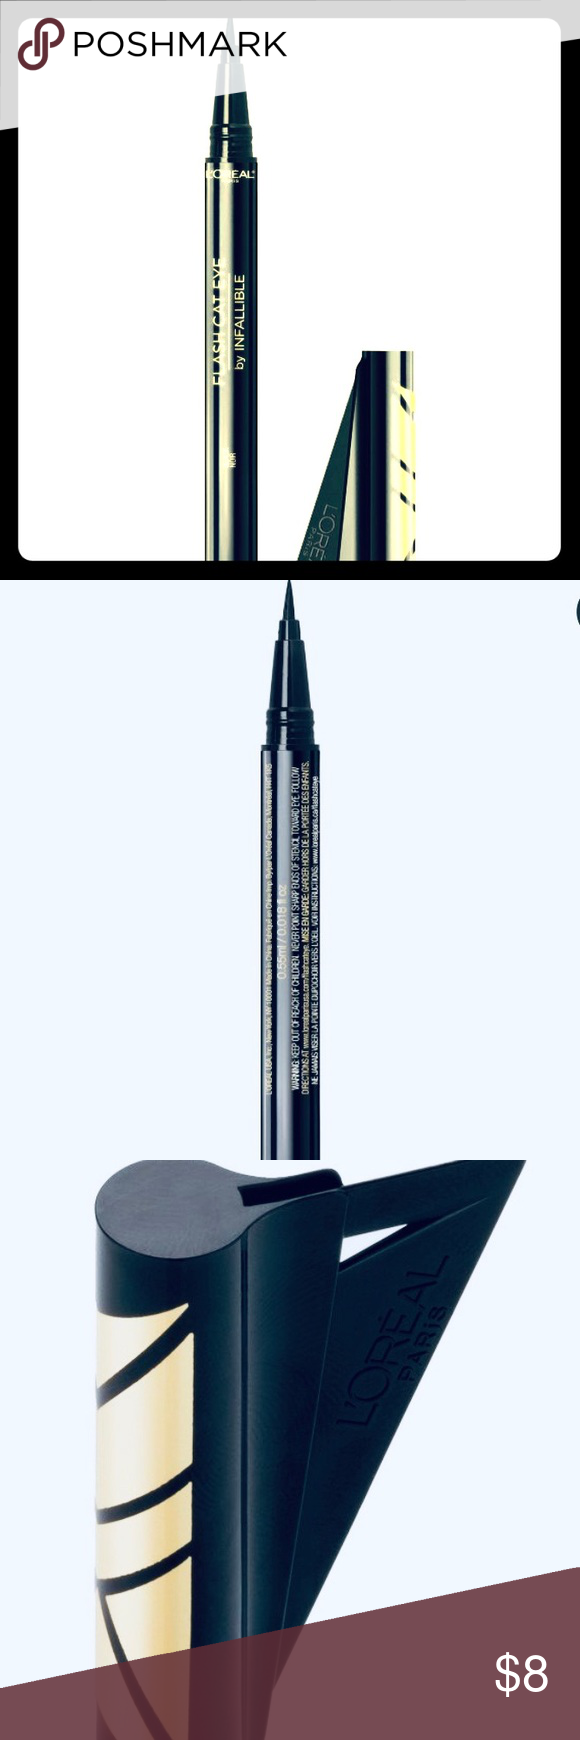 L'Oreal Infallible FLASH CAT EYE Liner + Stencil LOREAL